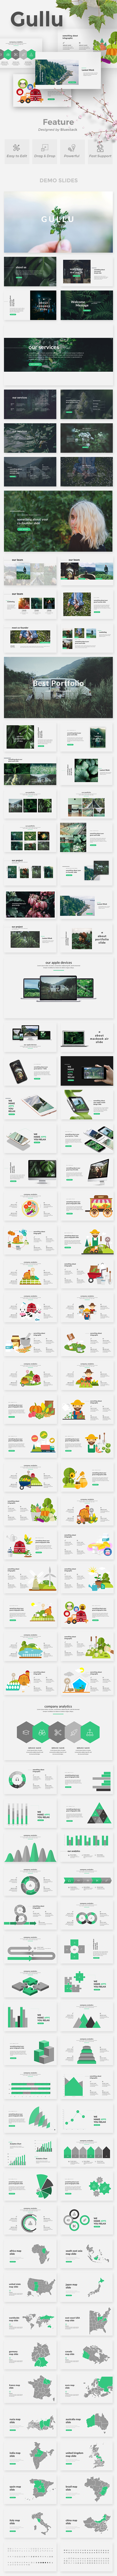 GraphicRiver Gullu Creative Google Slide Template 21184577